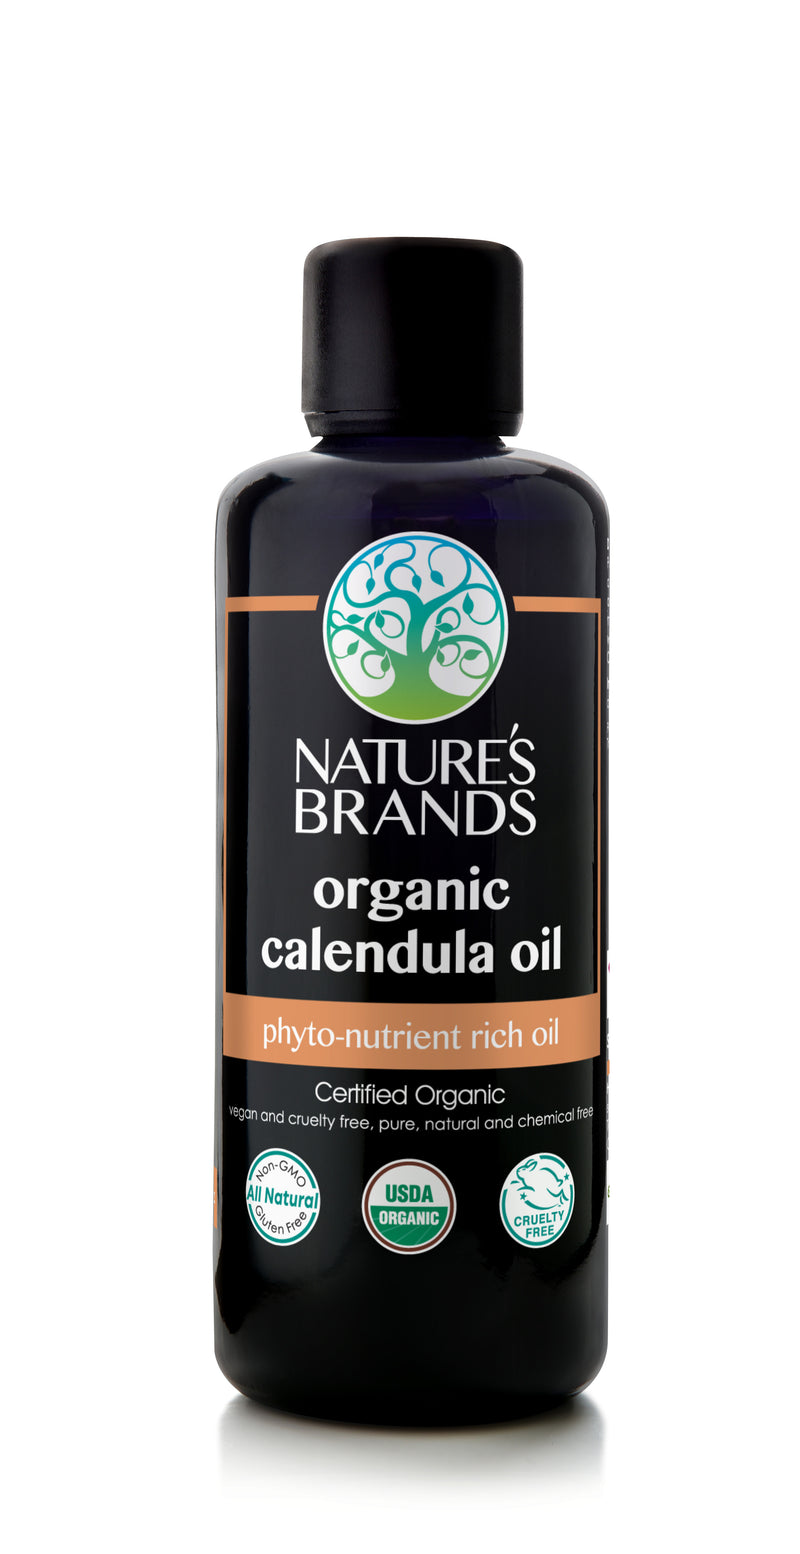 Herbal Choice Mari Organic Calendula Oil - Herbal Choice Mari Organic Calendula Oil - Herbal Choice Mari Organic Calendula Oil